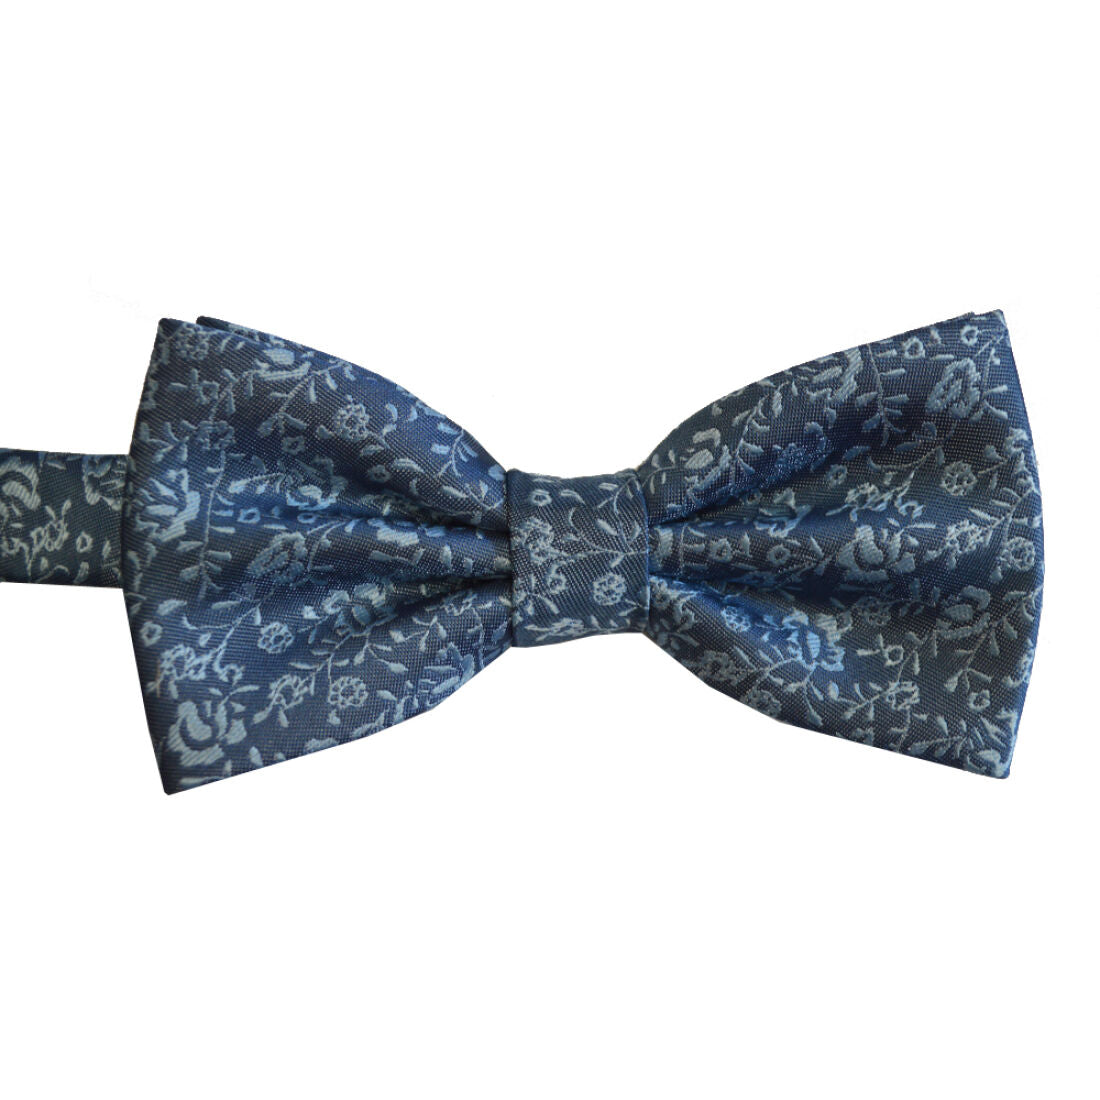 L.A SMITH : Floral Blue Bow Tie Set